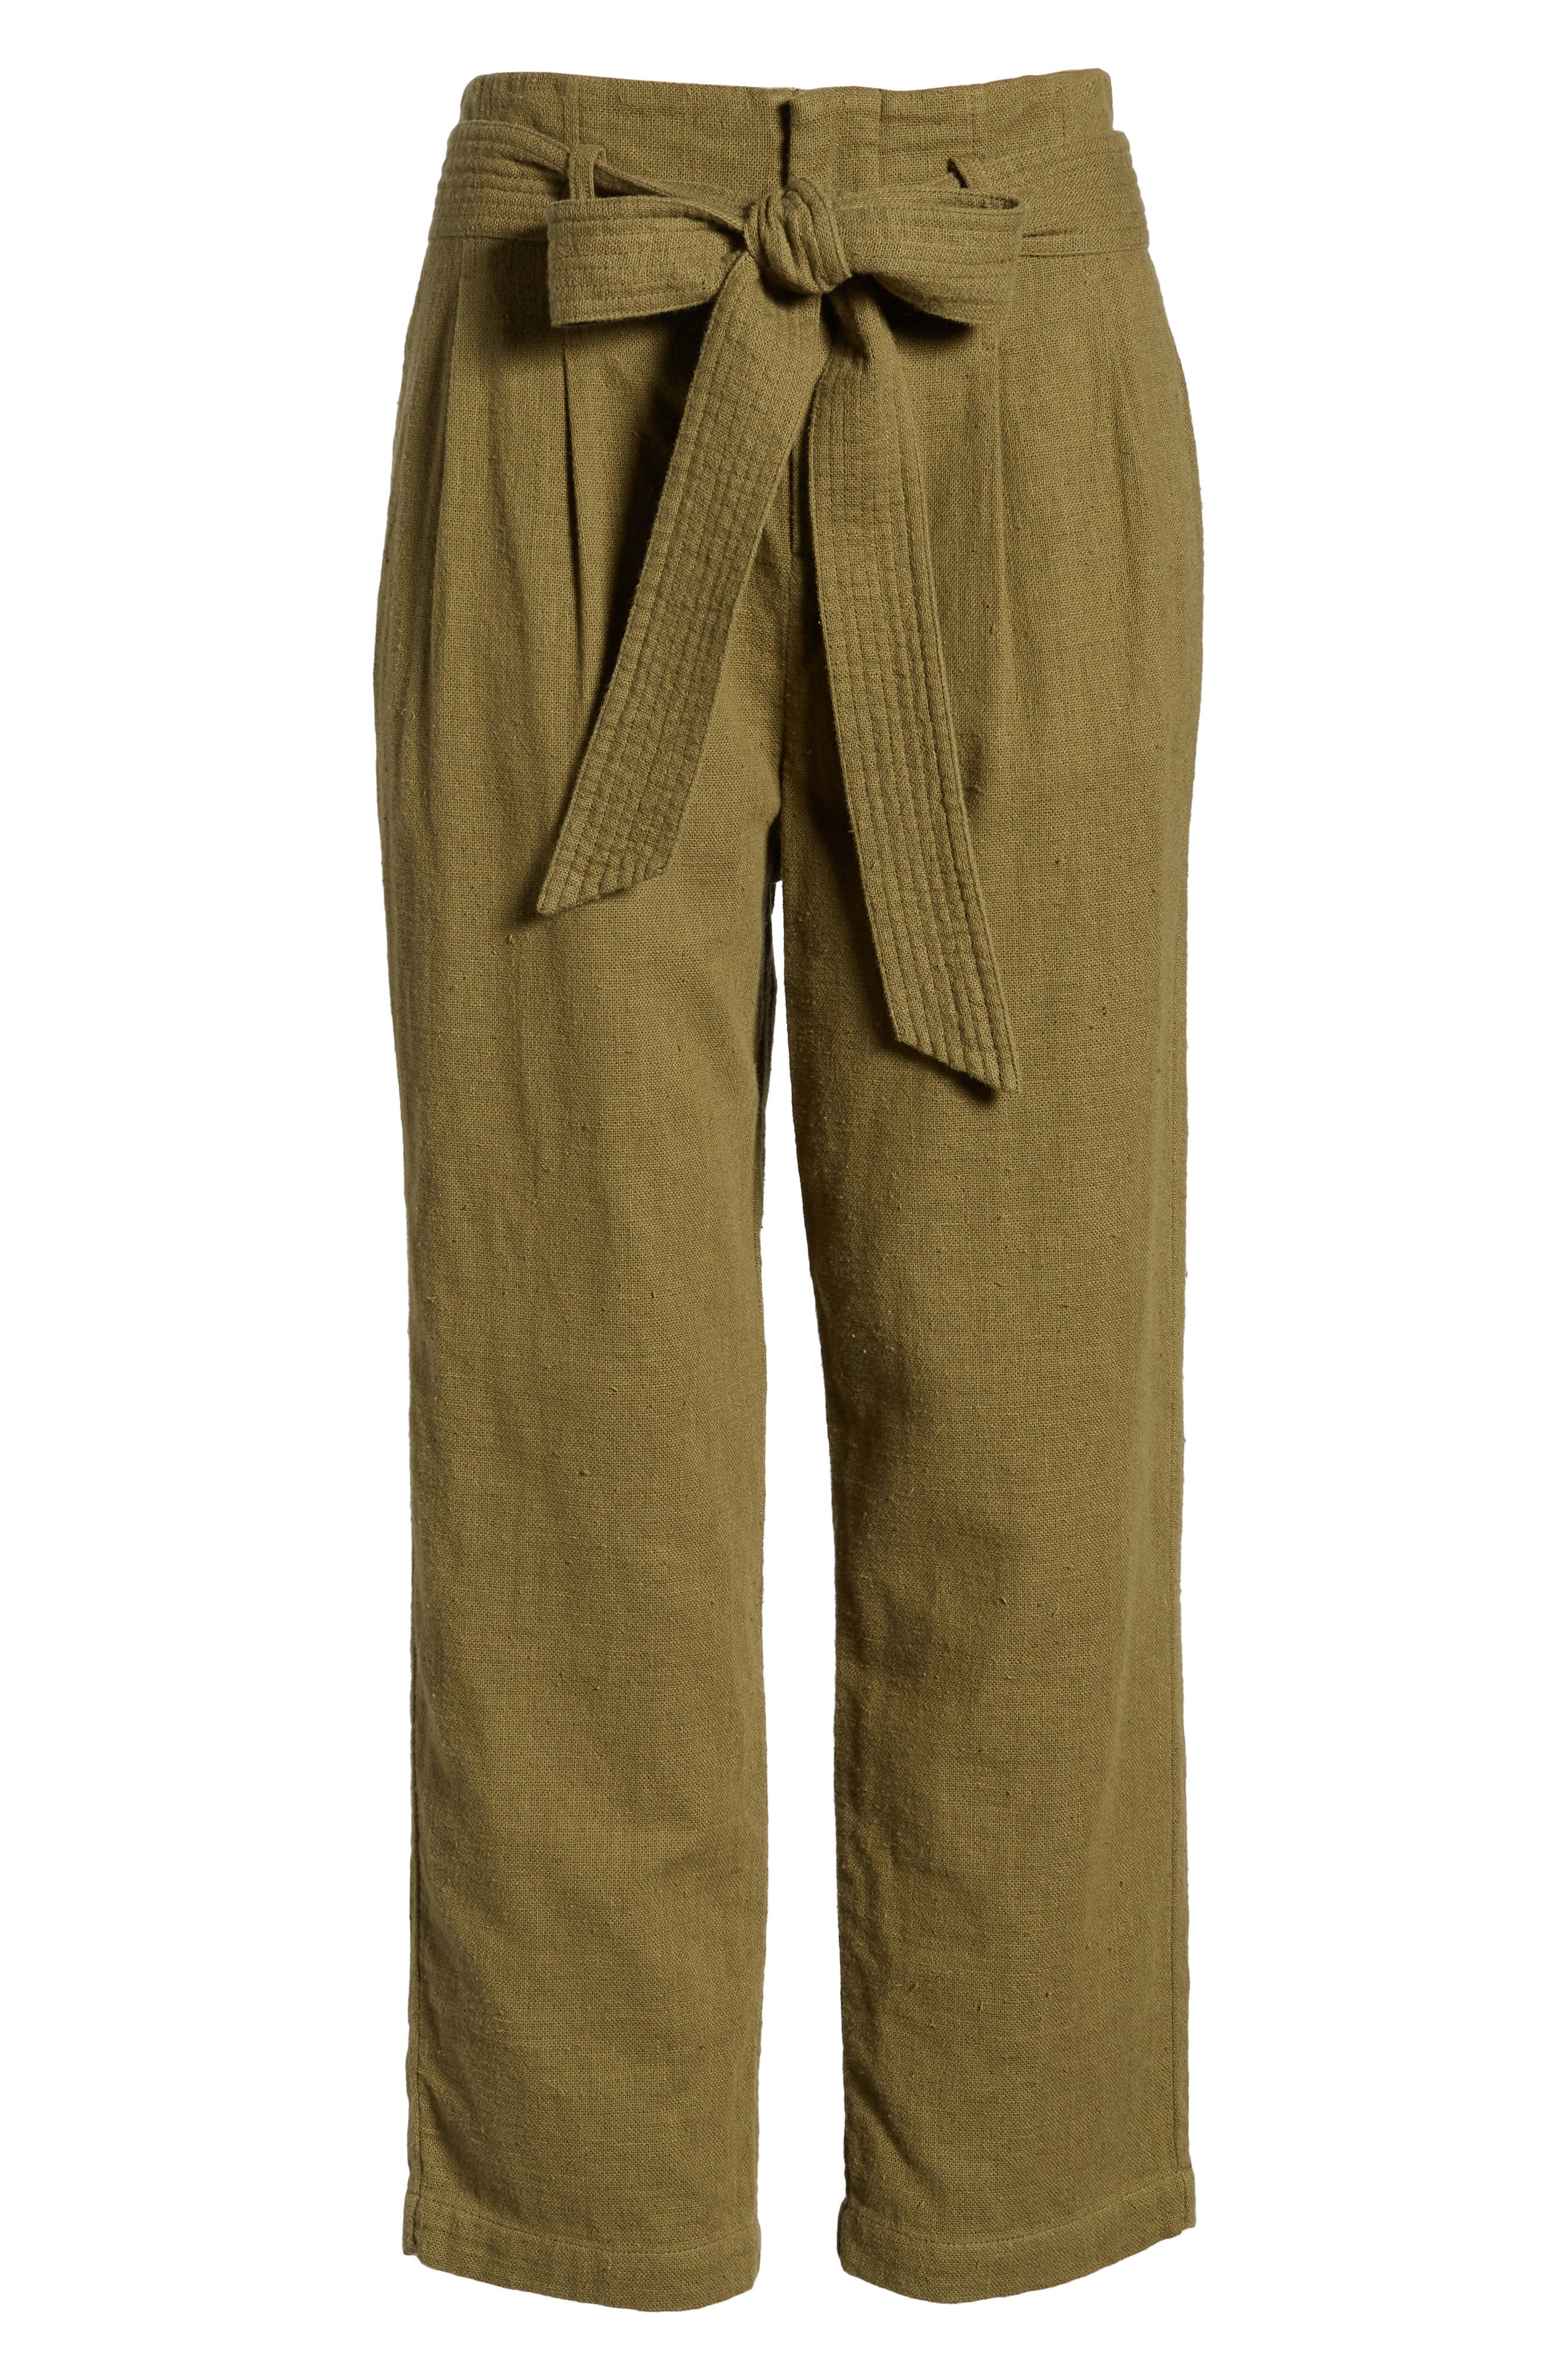 Darena Pants,                             Alternate thumbnail 7, color,                             OLIVE GROVE